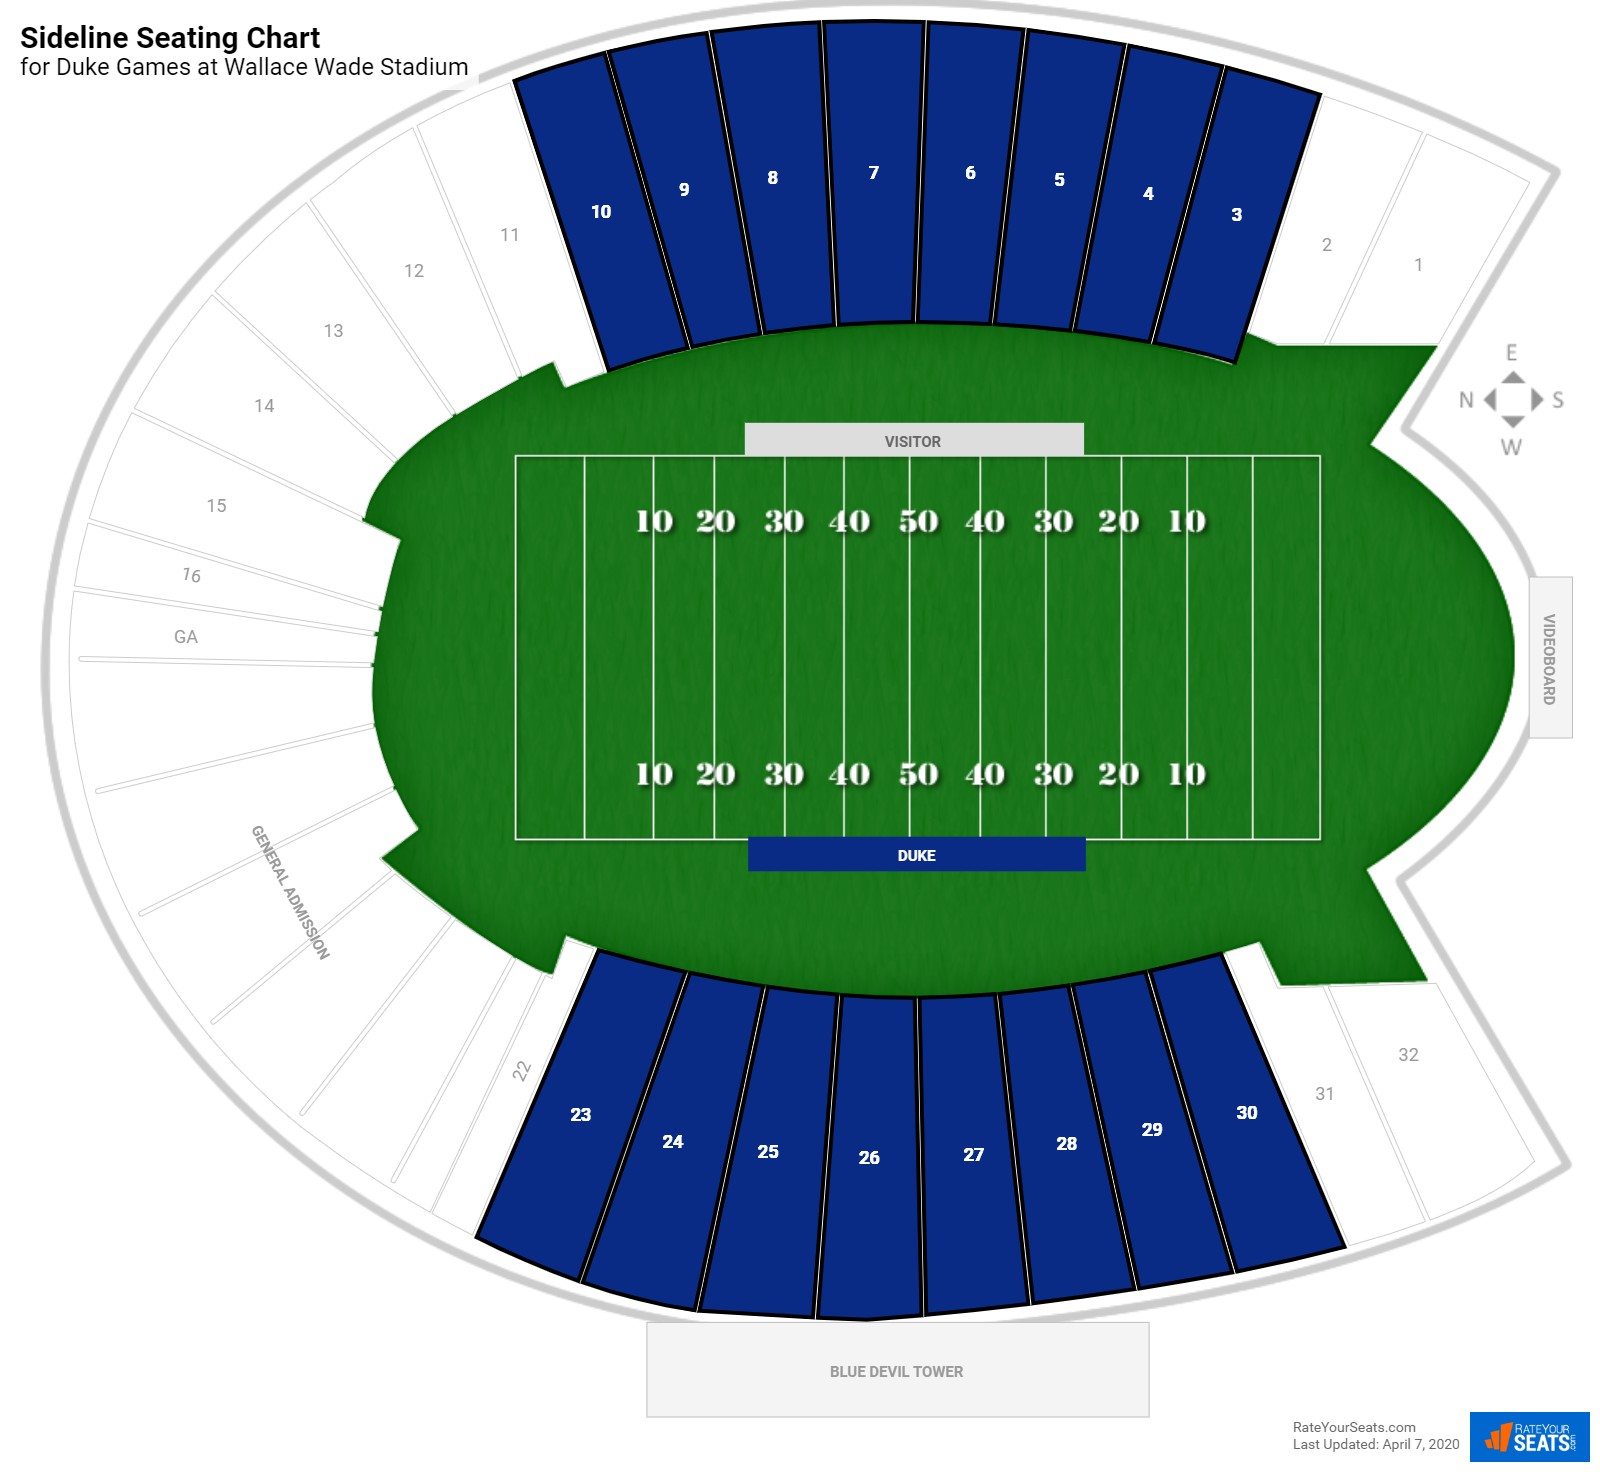 Wallace Wade Stadium Sideline seating chart